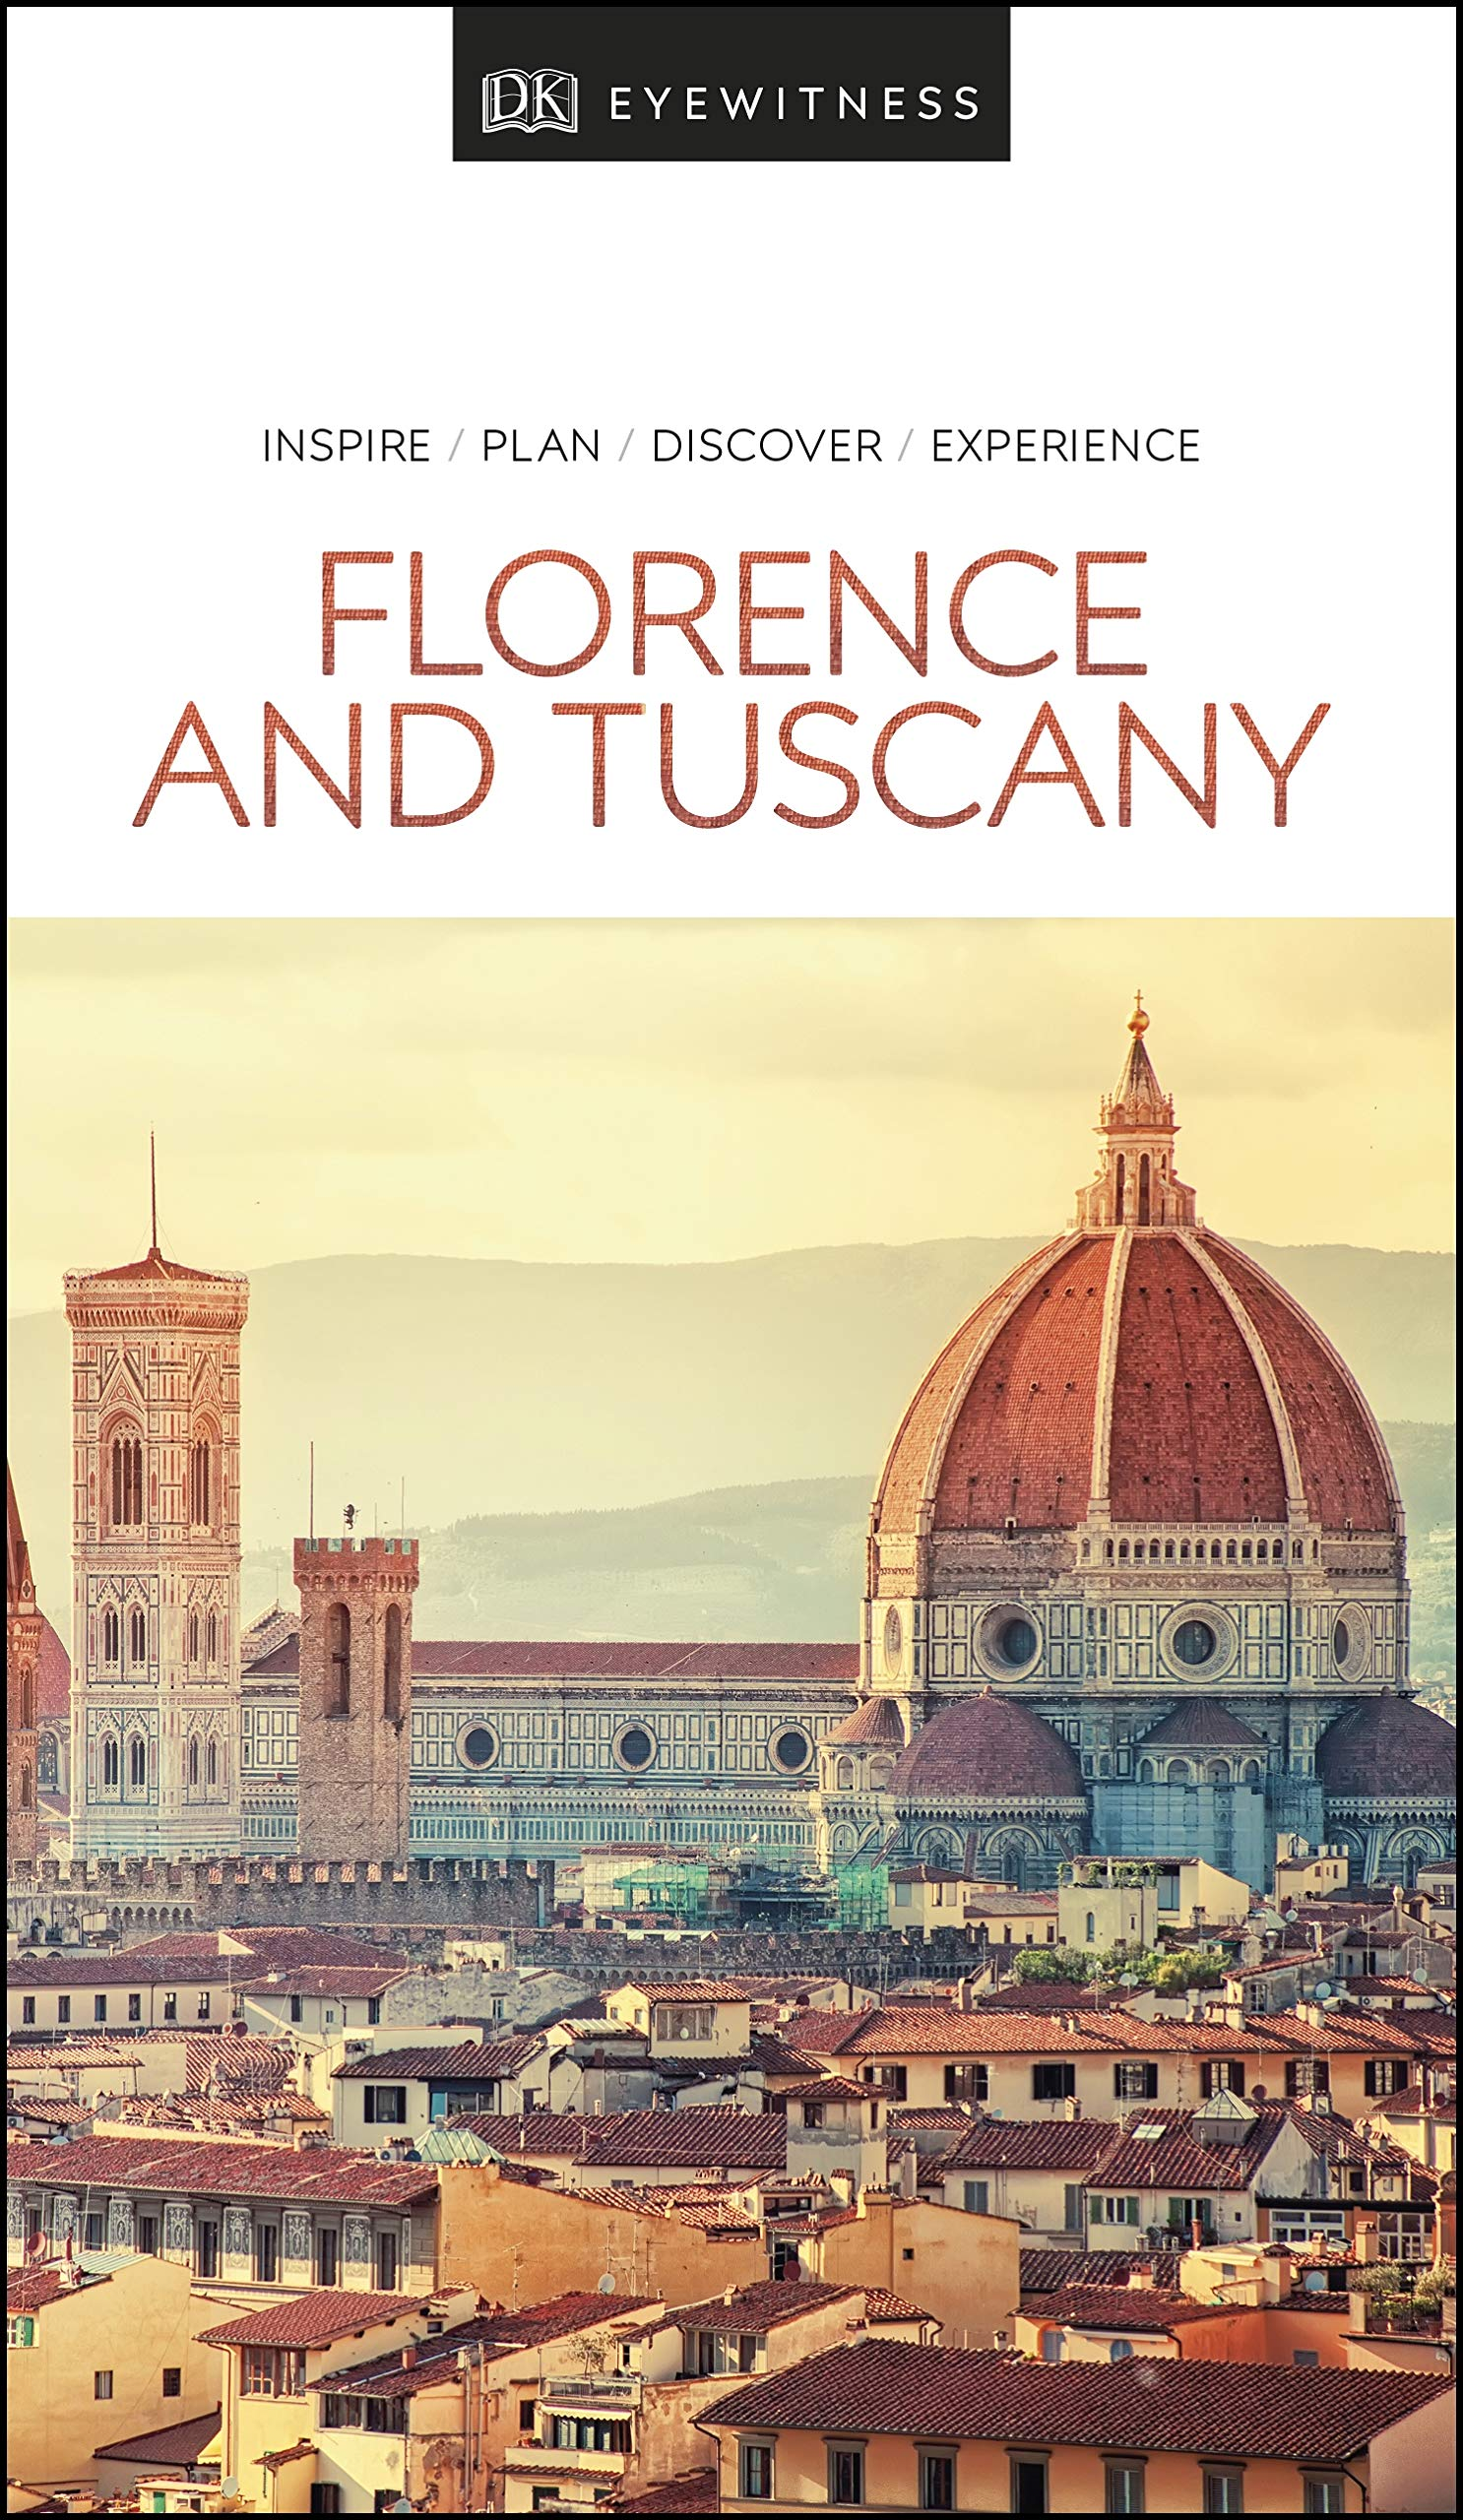 DK Eyewitness Florence And Tuscany  Travel Guide